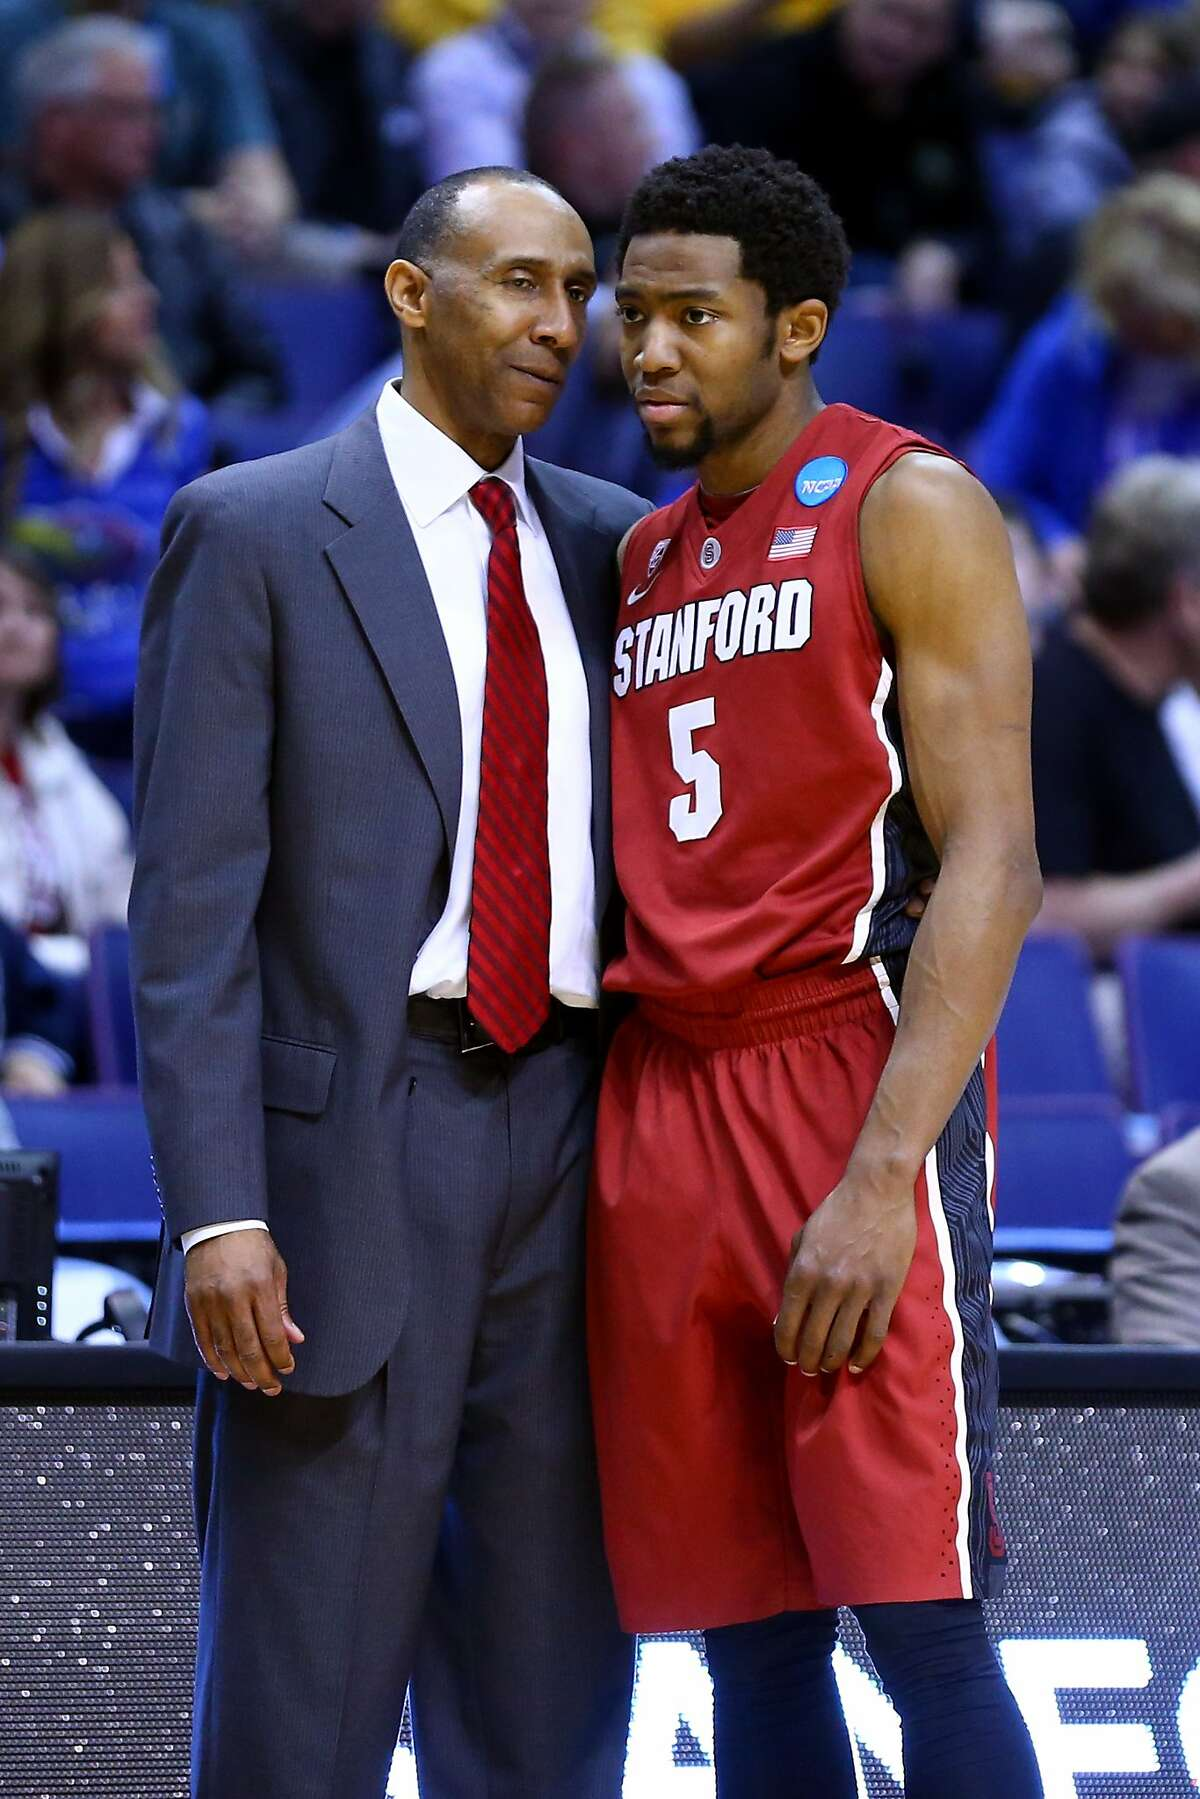 ST LOUIS, MO - MARCH 21: Head coach Johnny Dawkins of the Stanford Cardinal talks with Chasson Randle #5 after a foul by New Mexico Lobos during the second round of the 2014 NCAA Men's Basketball Tournament at Scottrade Center on March 21, 2014 in St Louis, Missouri. (Photo by Dilip Vishwanat/Getty Images)